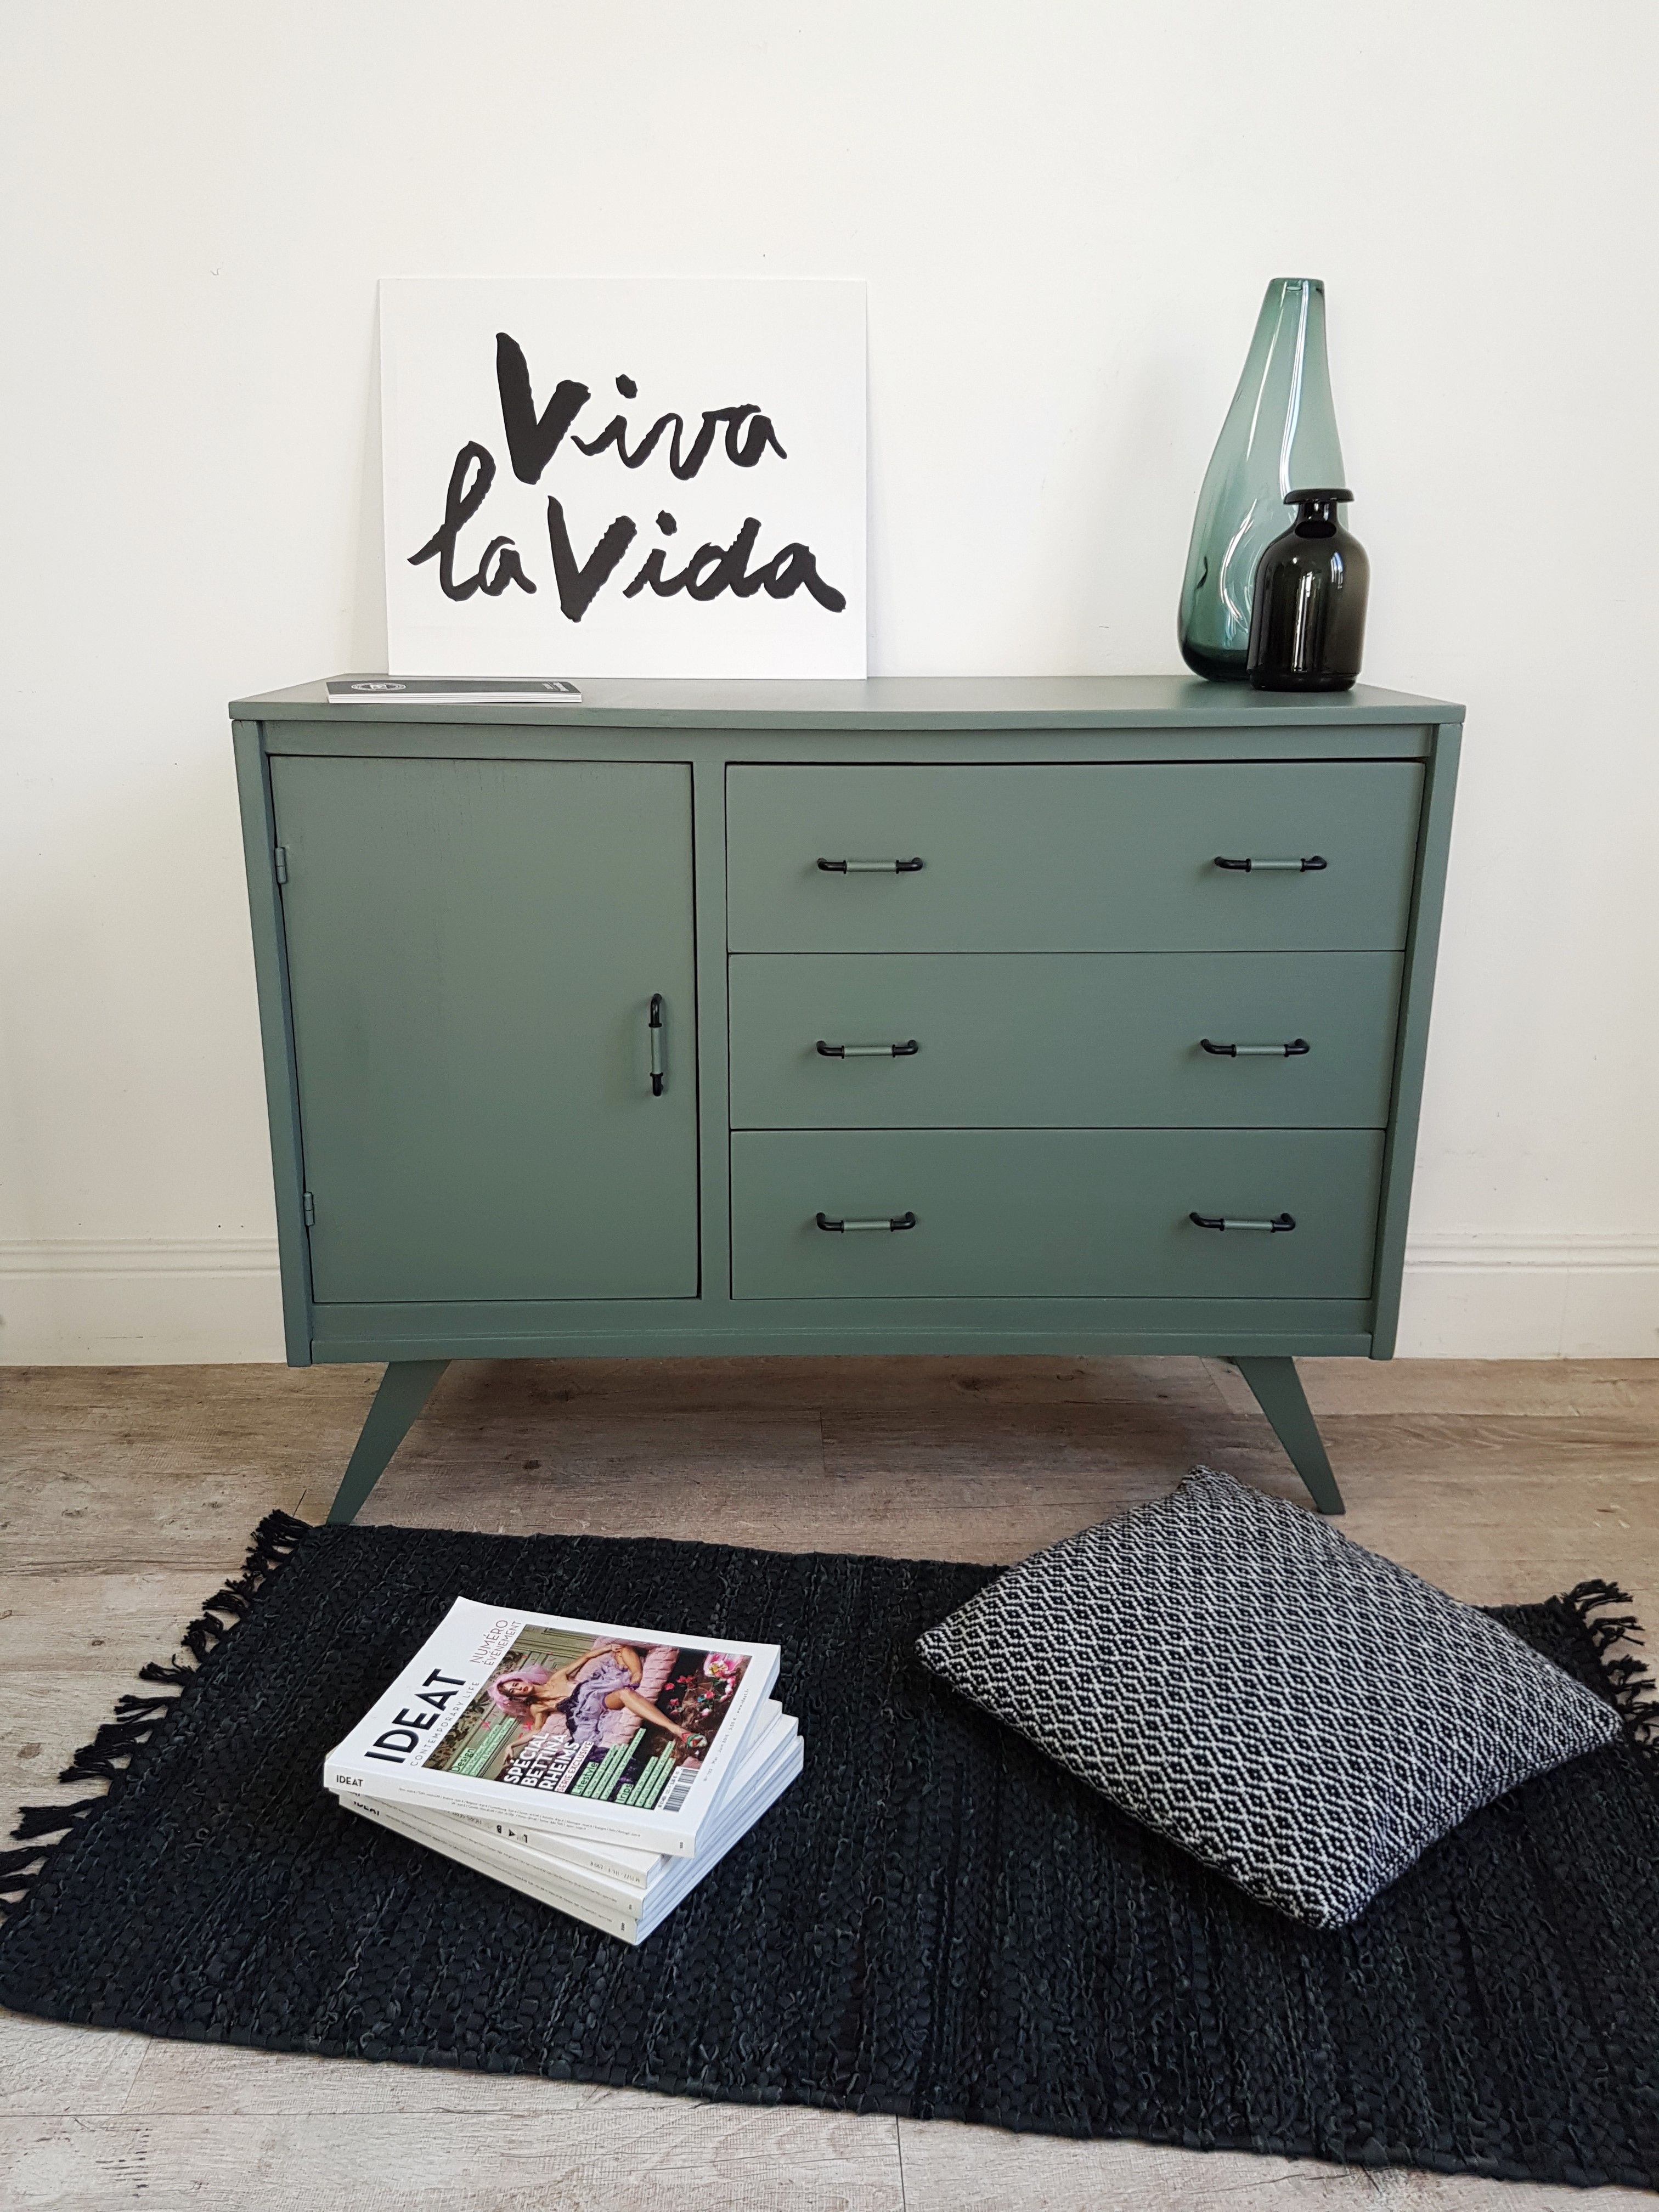 Pin By Emma Barney On Diy In 2020 Furniture Home Decor Painted Furniture